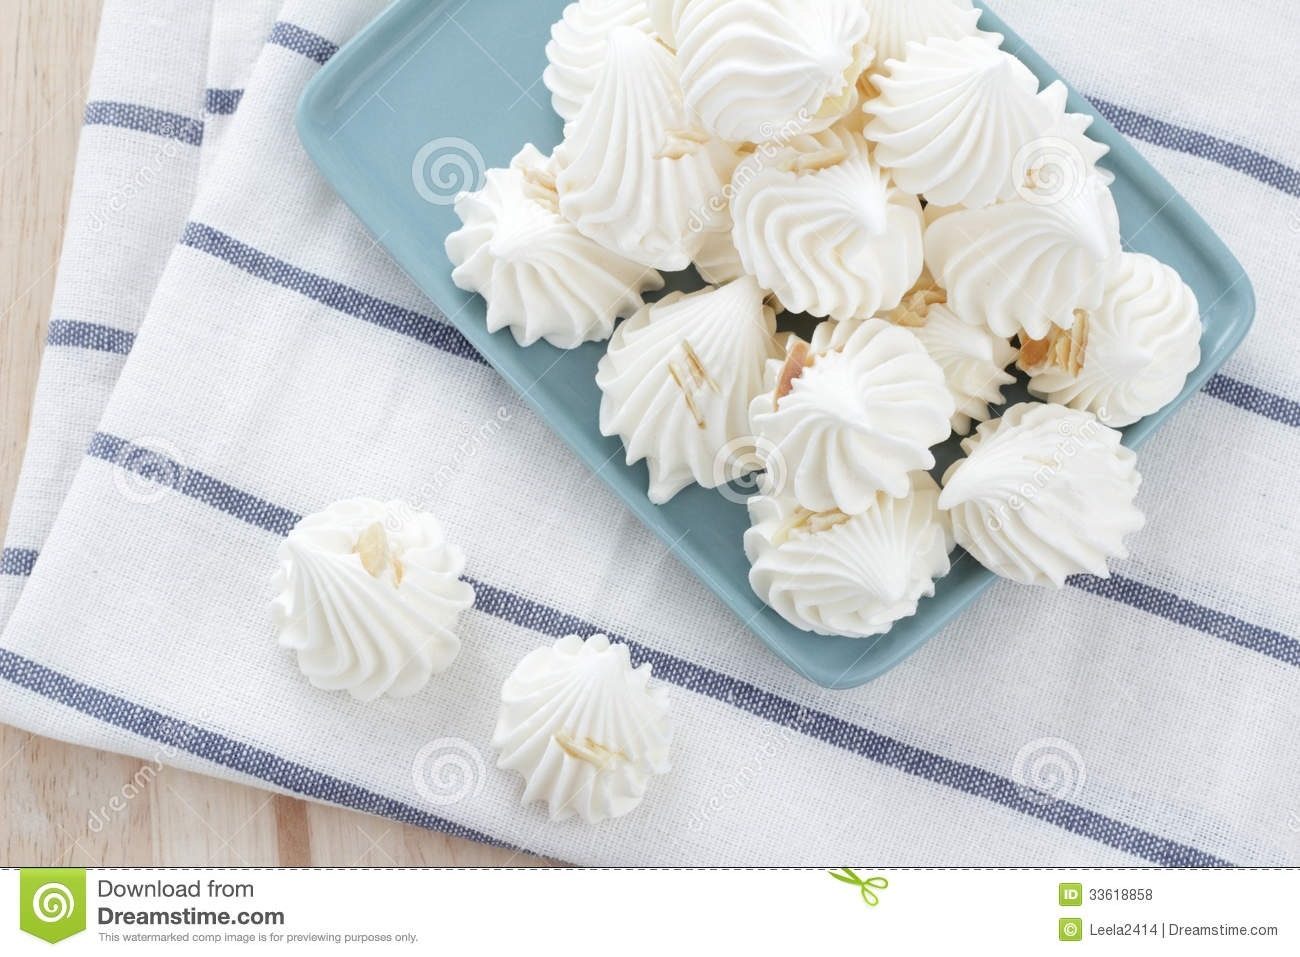 Meringue, light fluffy yummy, sums it up haha. Meringues are good if your house is quit not so much if you have children running around making noise